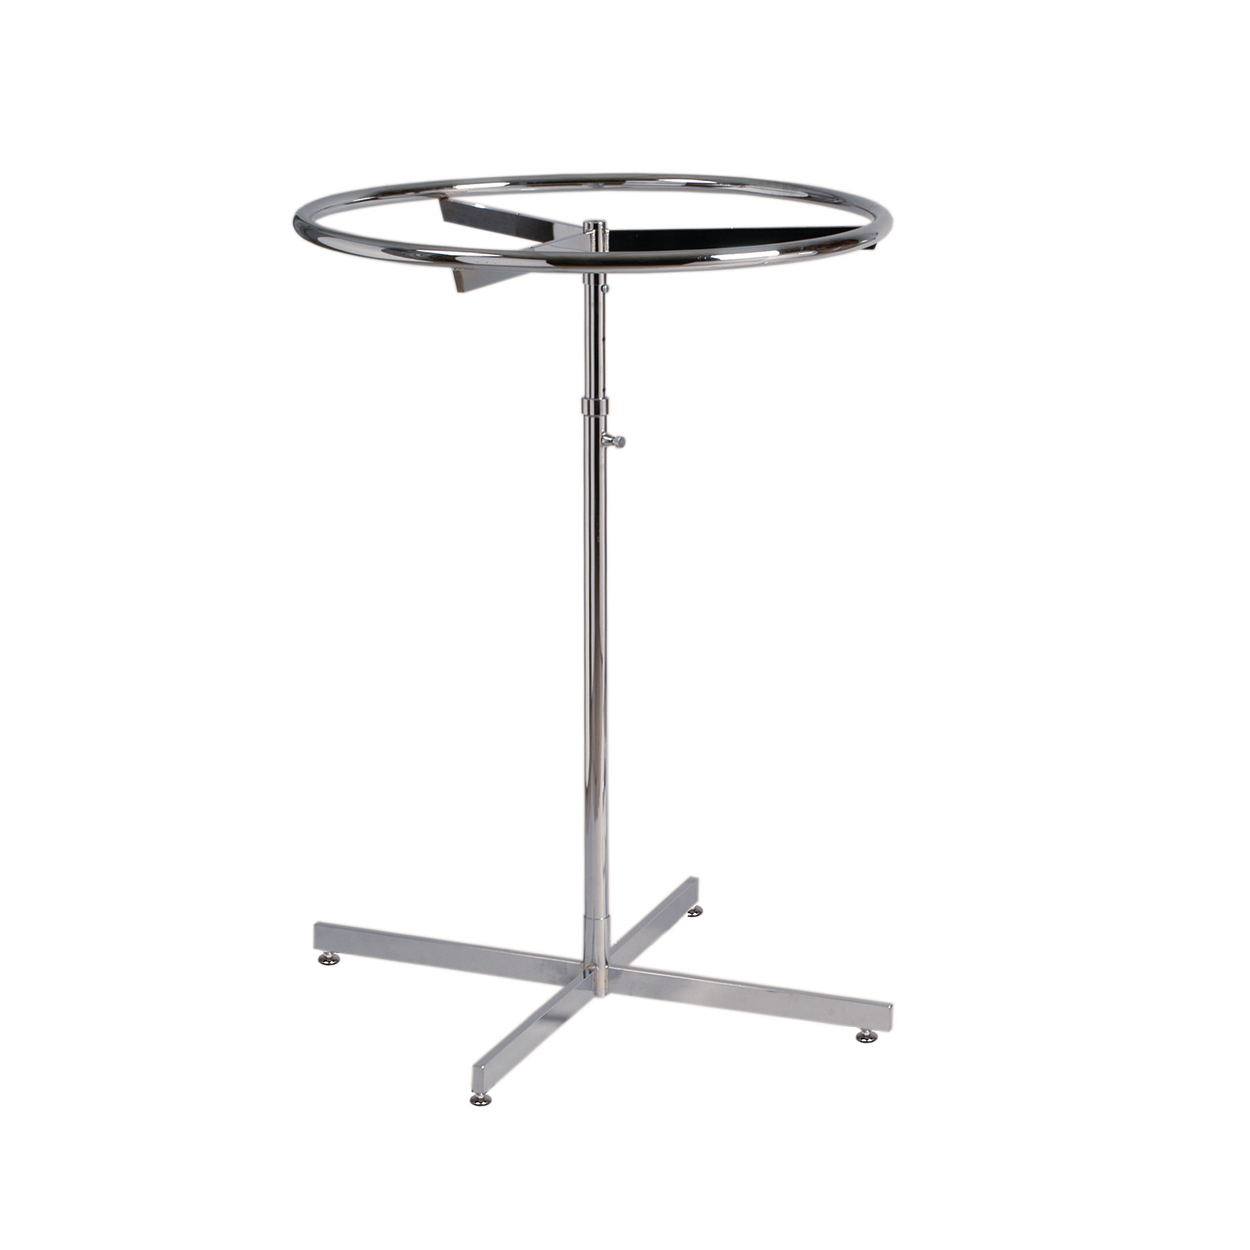 Round Clothes Rack on Glides. Dimensions 840mm Diameter and 1063-1519mm Adjustable Height